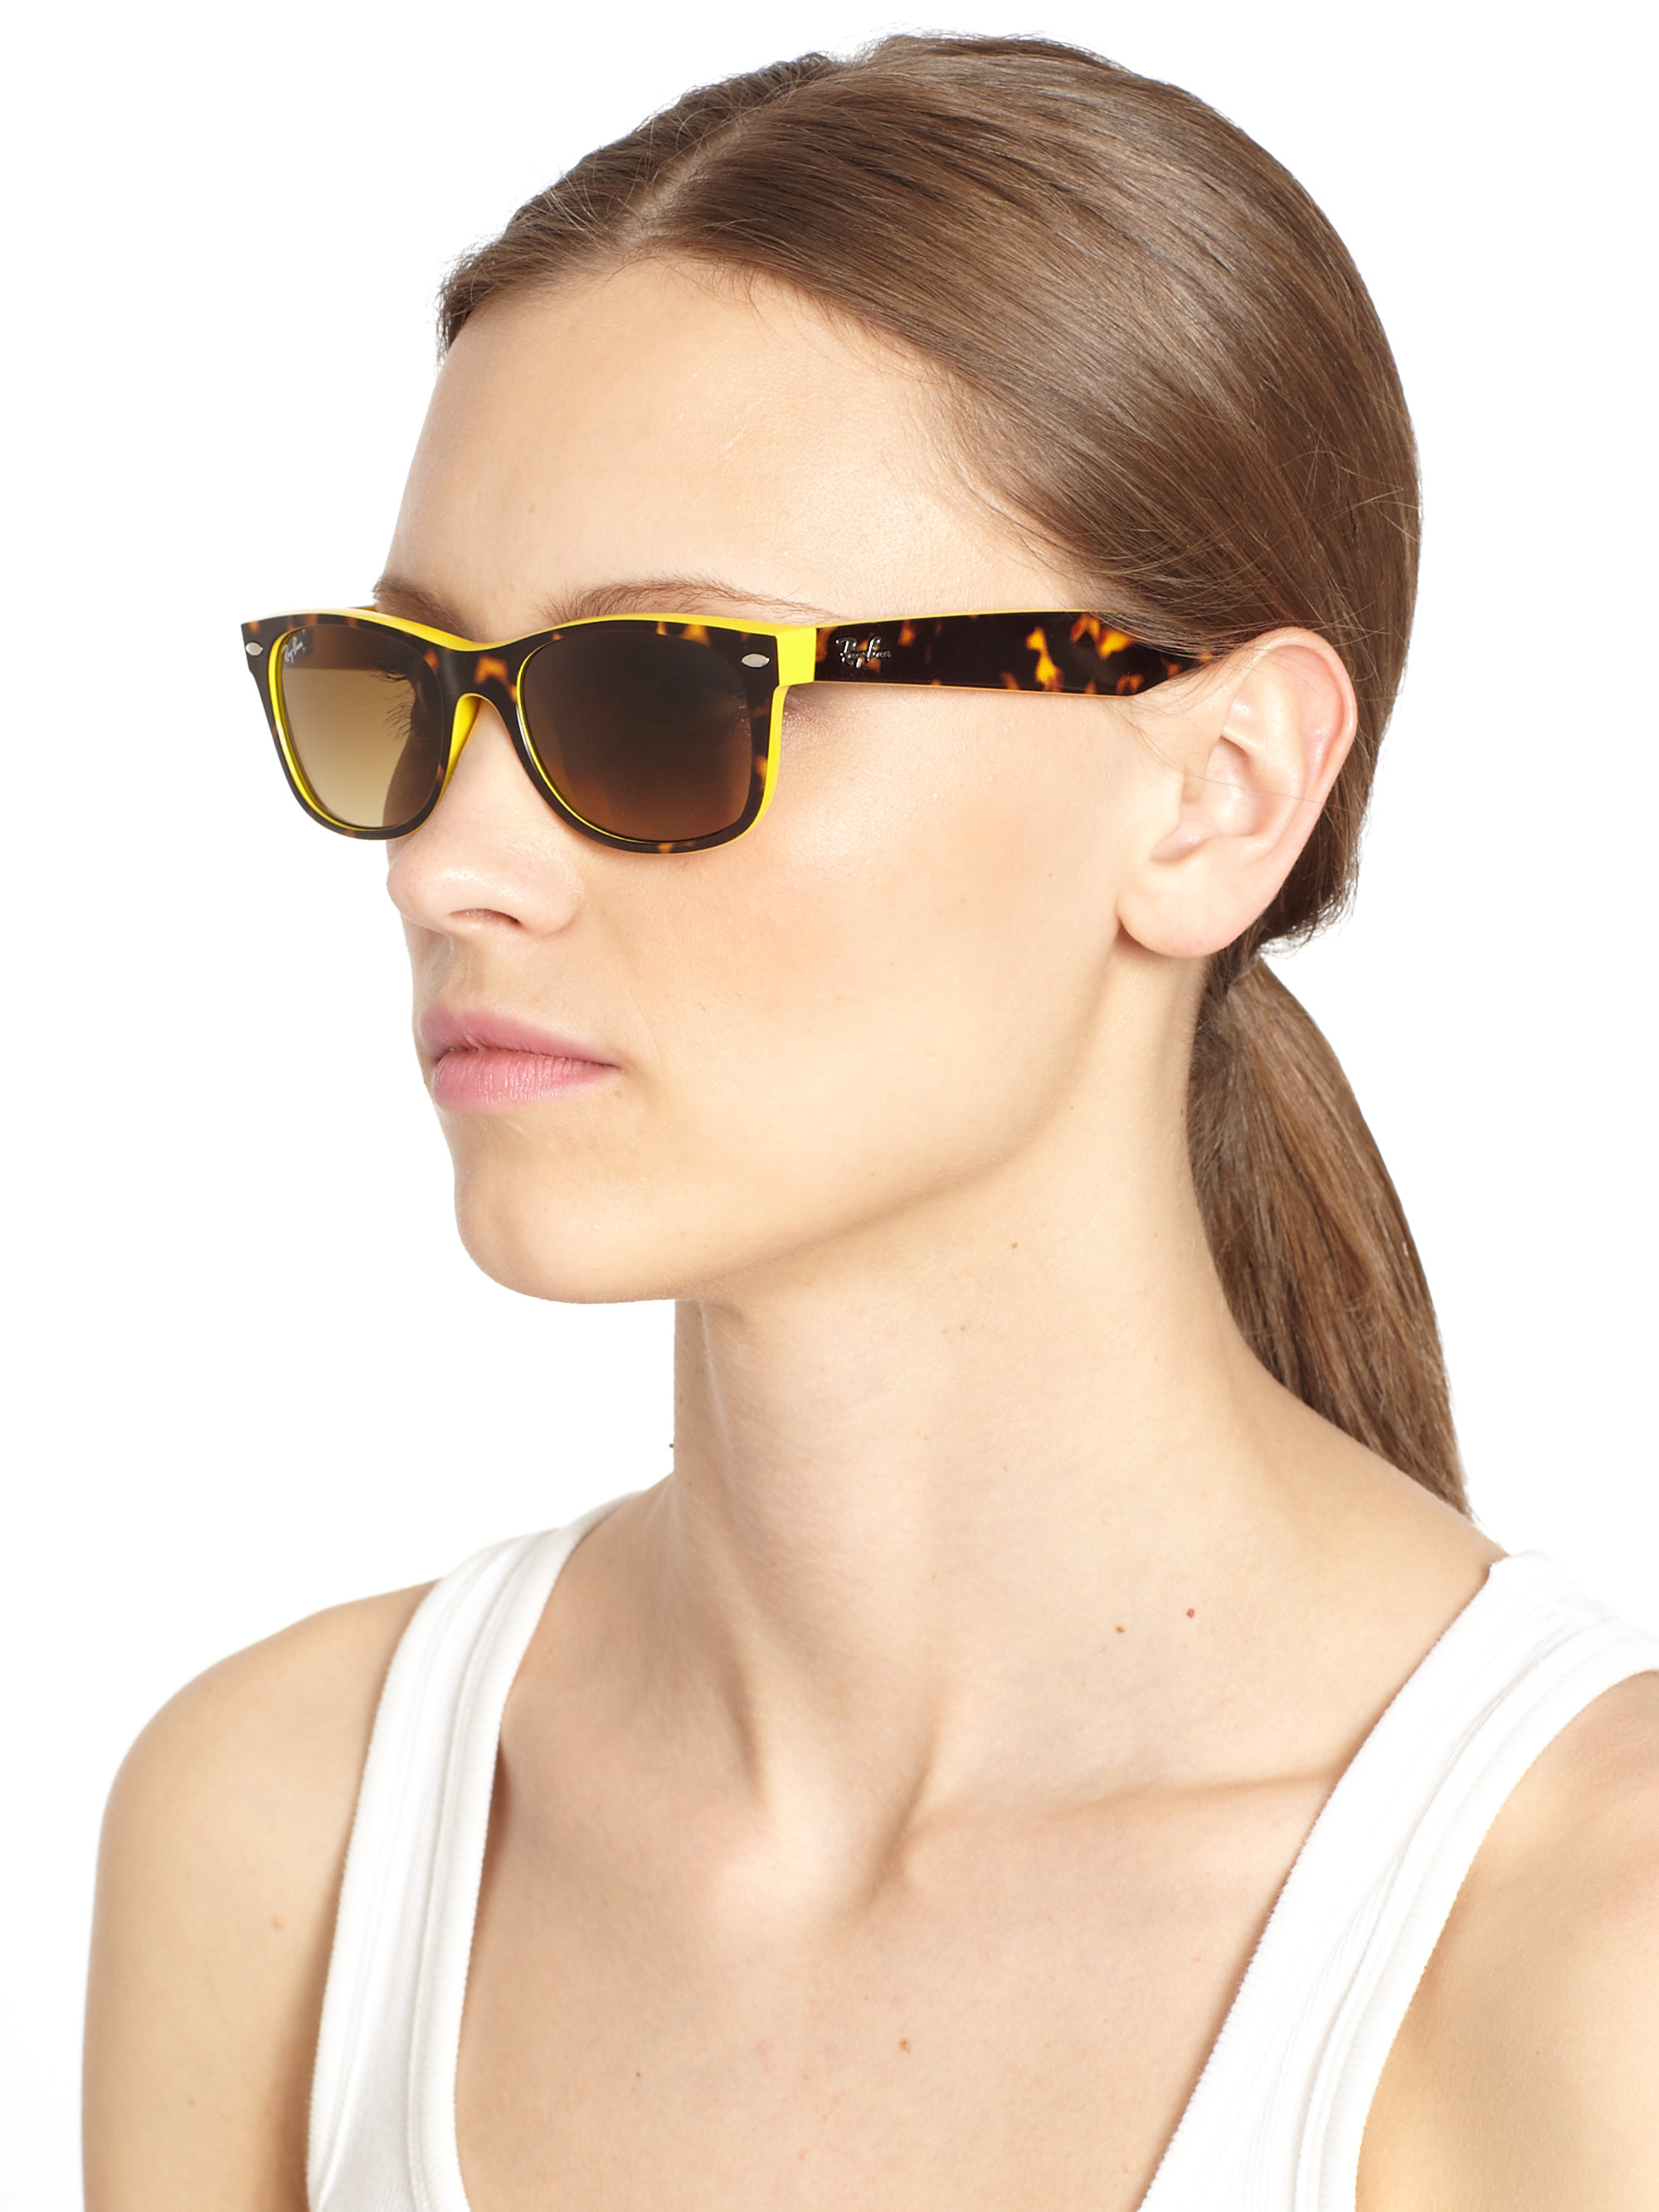 ray ban wayfarer yellow sunglasses  gallery